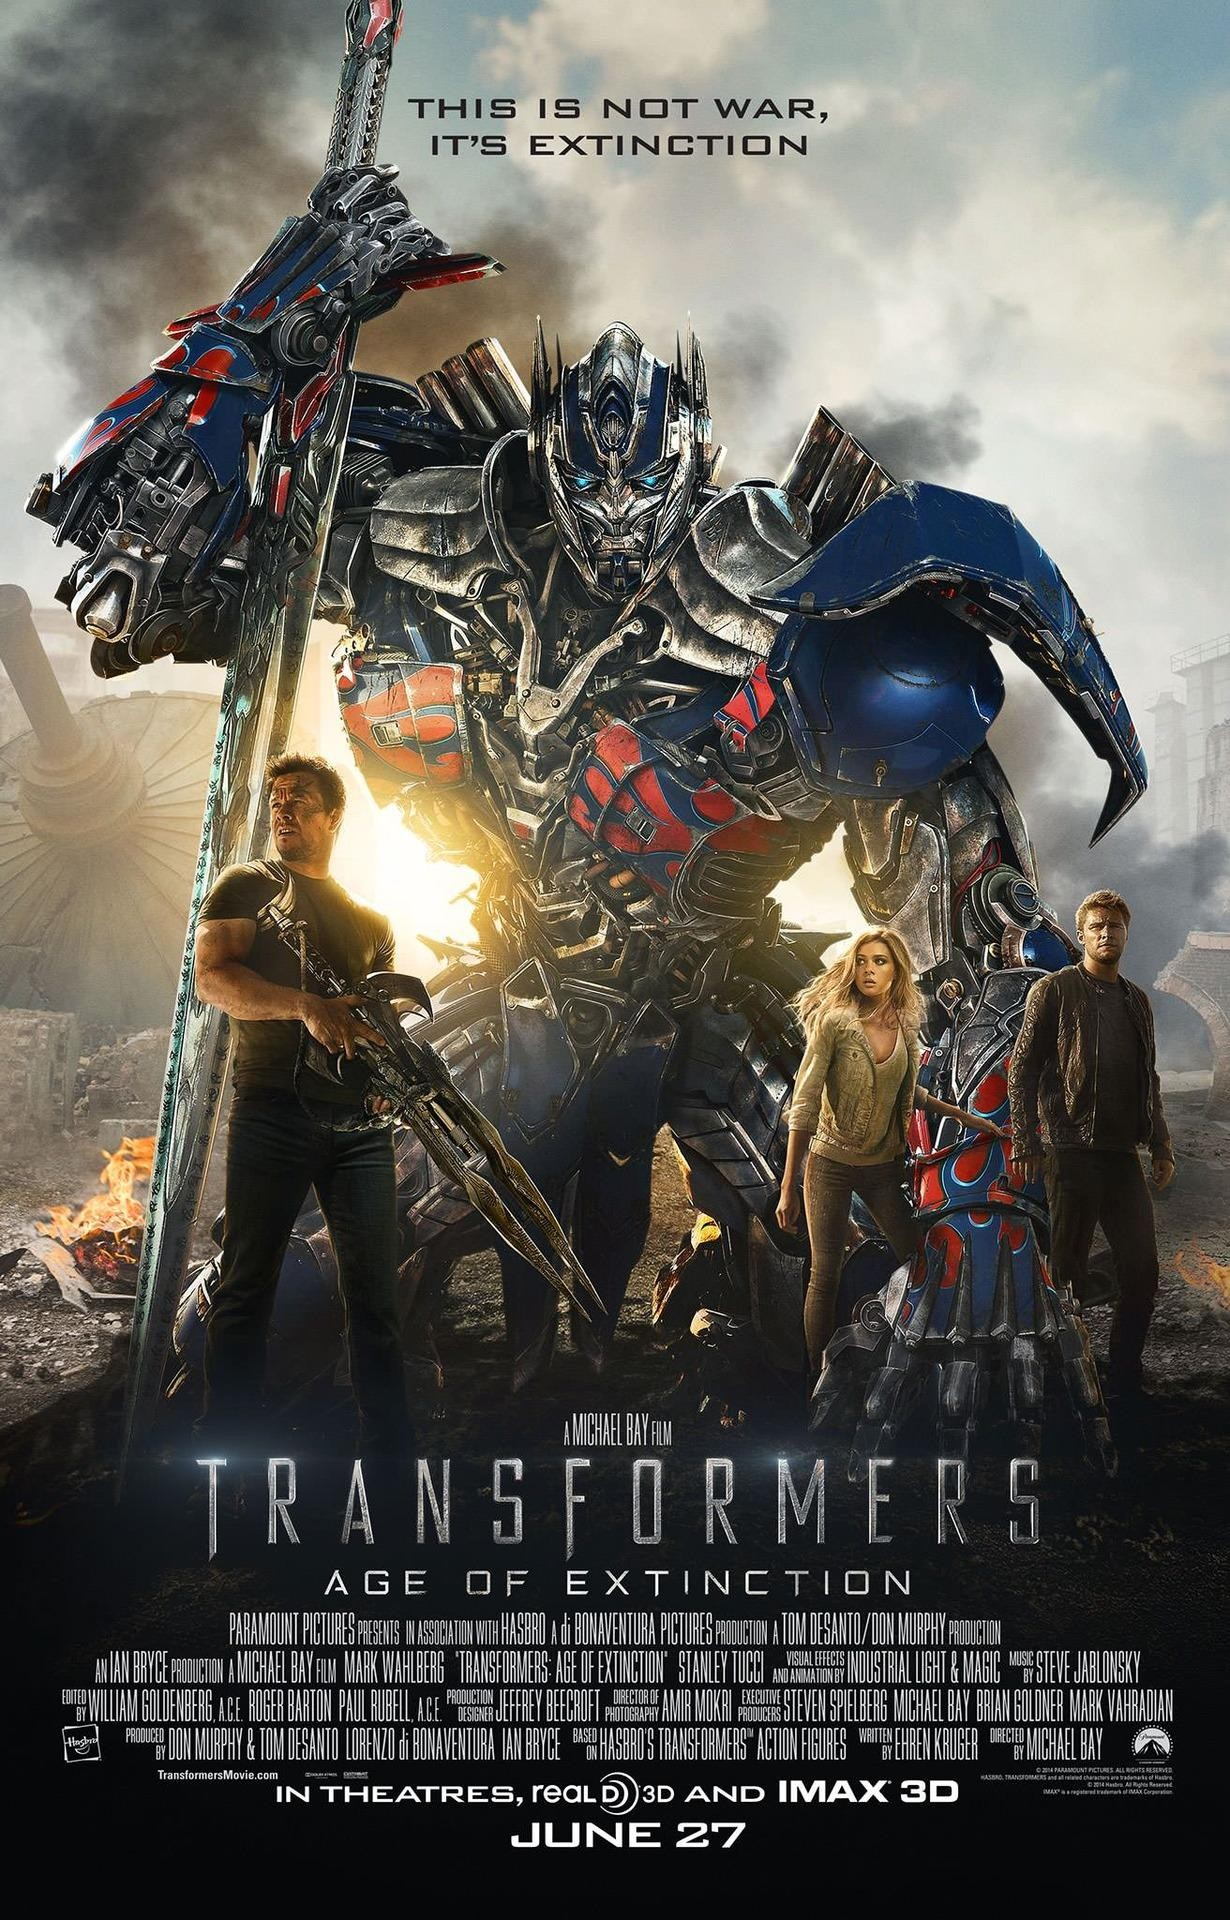 Watch Transformers: Age of Extinction (2014) online free